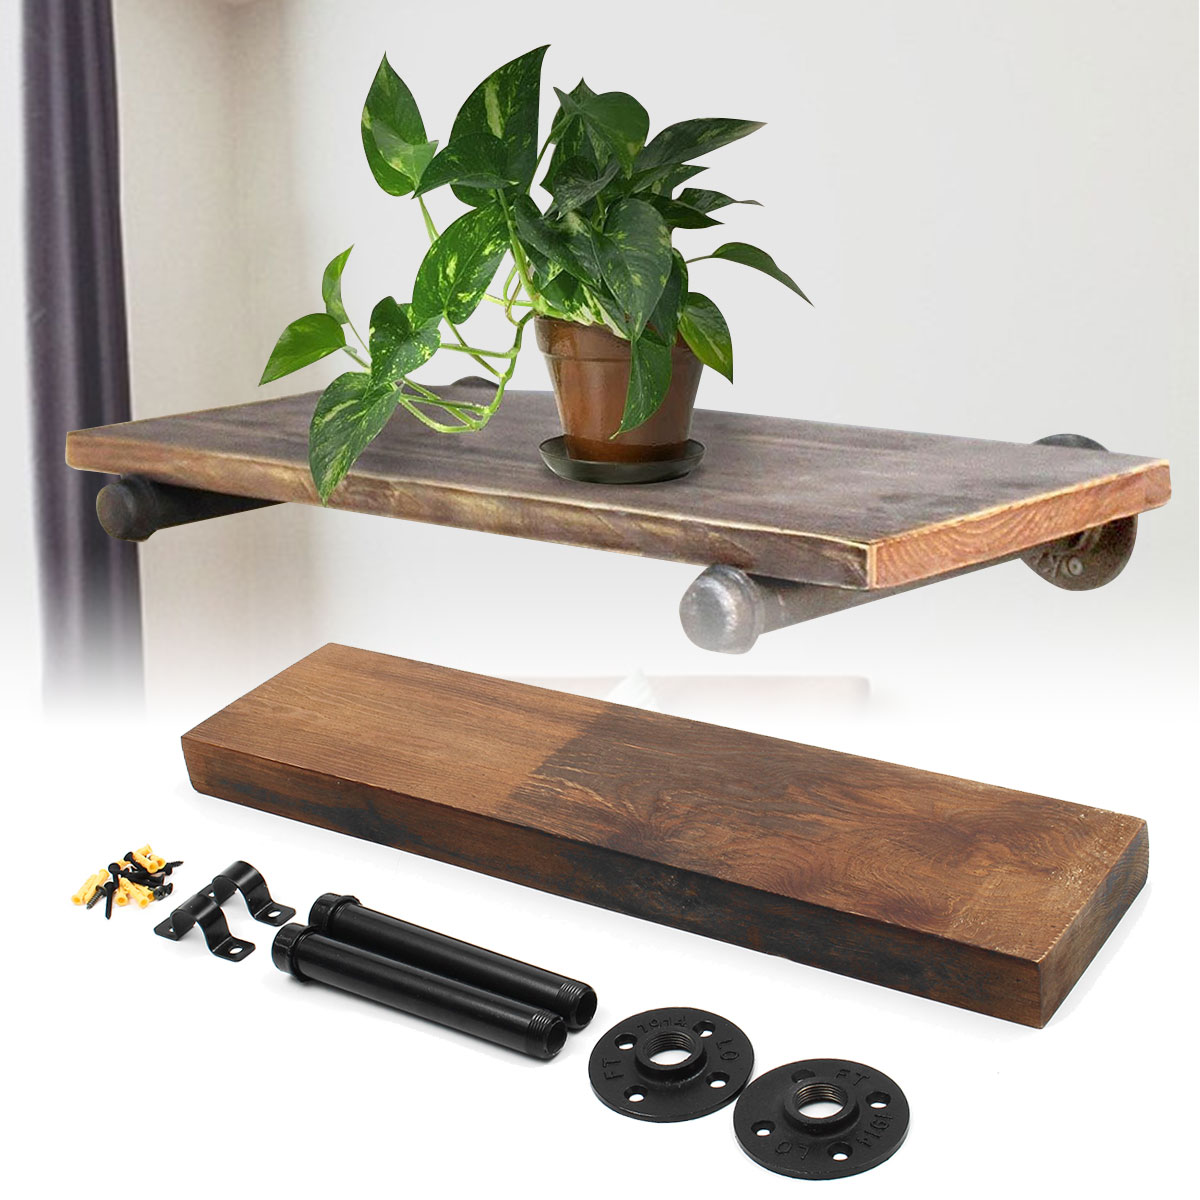 24 36 industrial rustic pipe wall shelf bracket storage. Black Bedroom Furniture Sets. Home Design Ideas